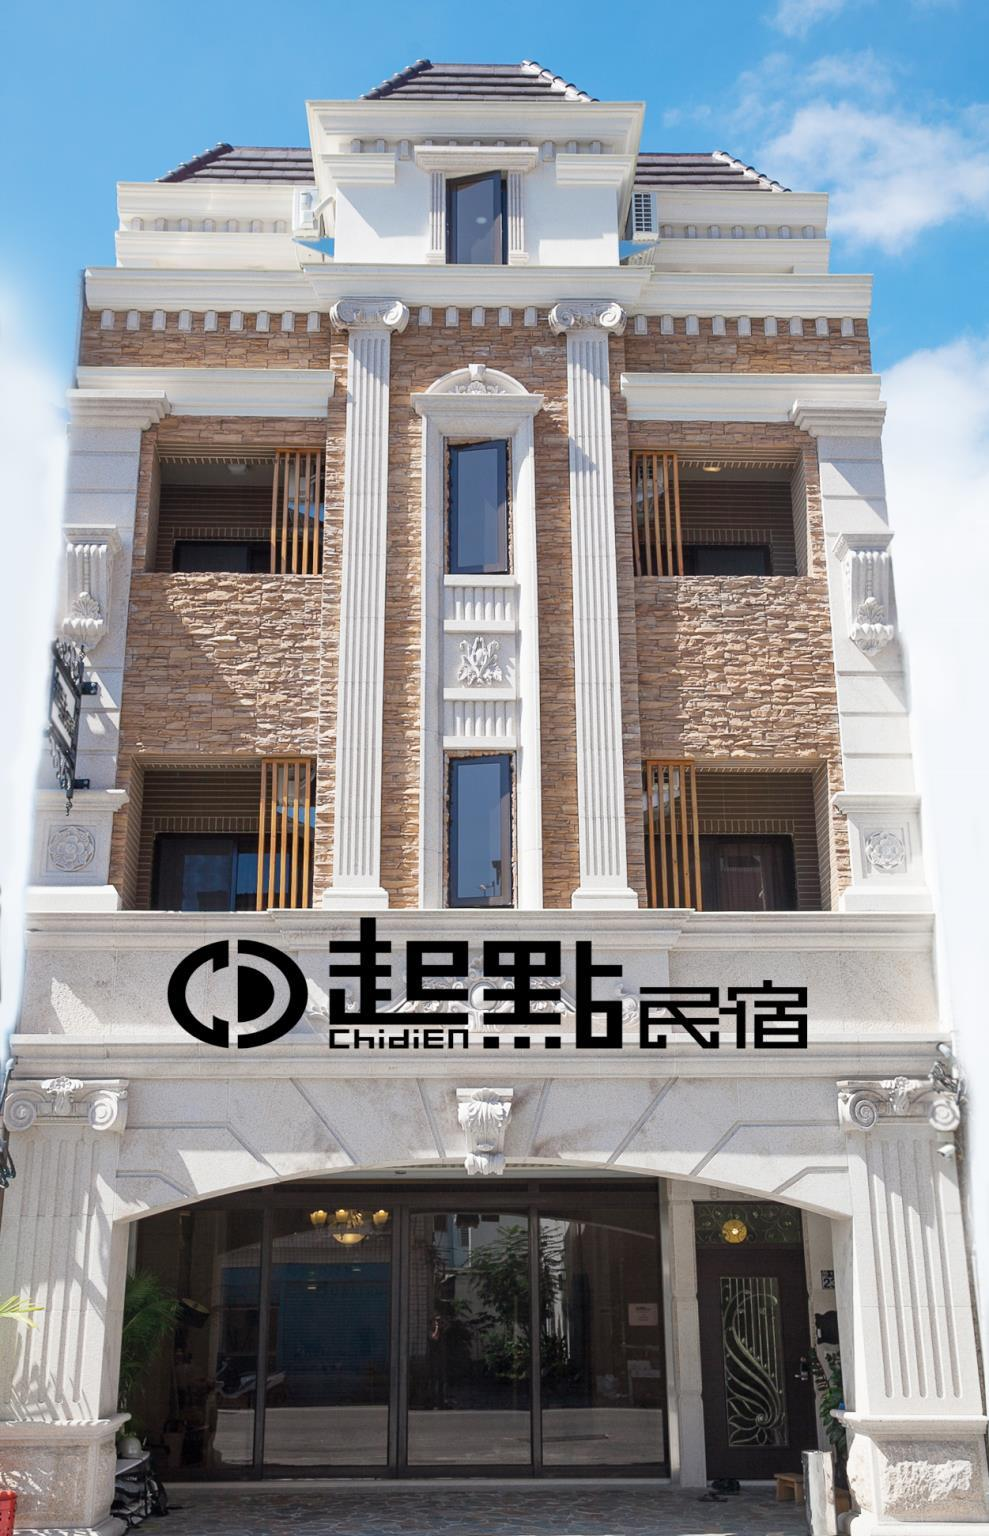 Chi Dien Bed And Breakfast